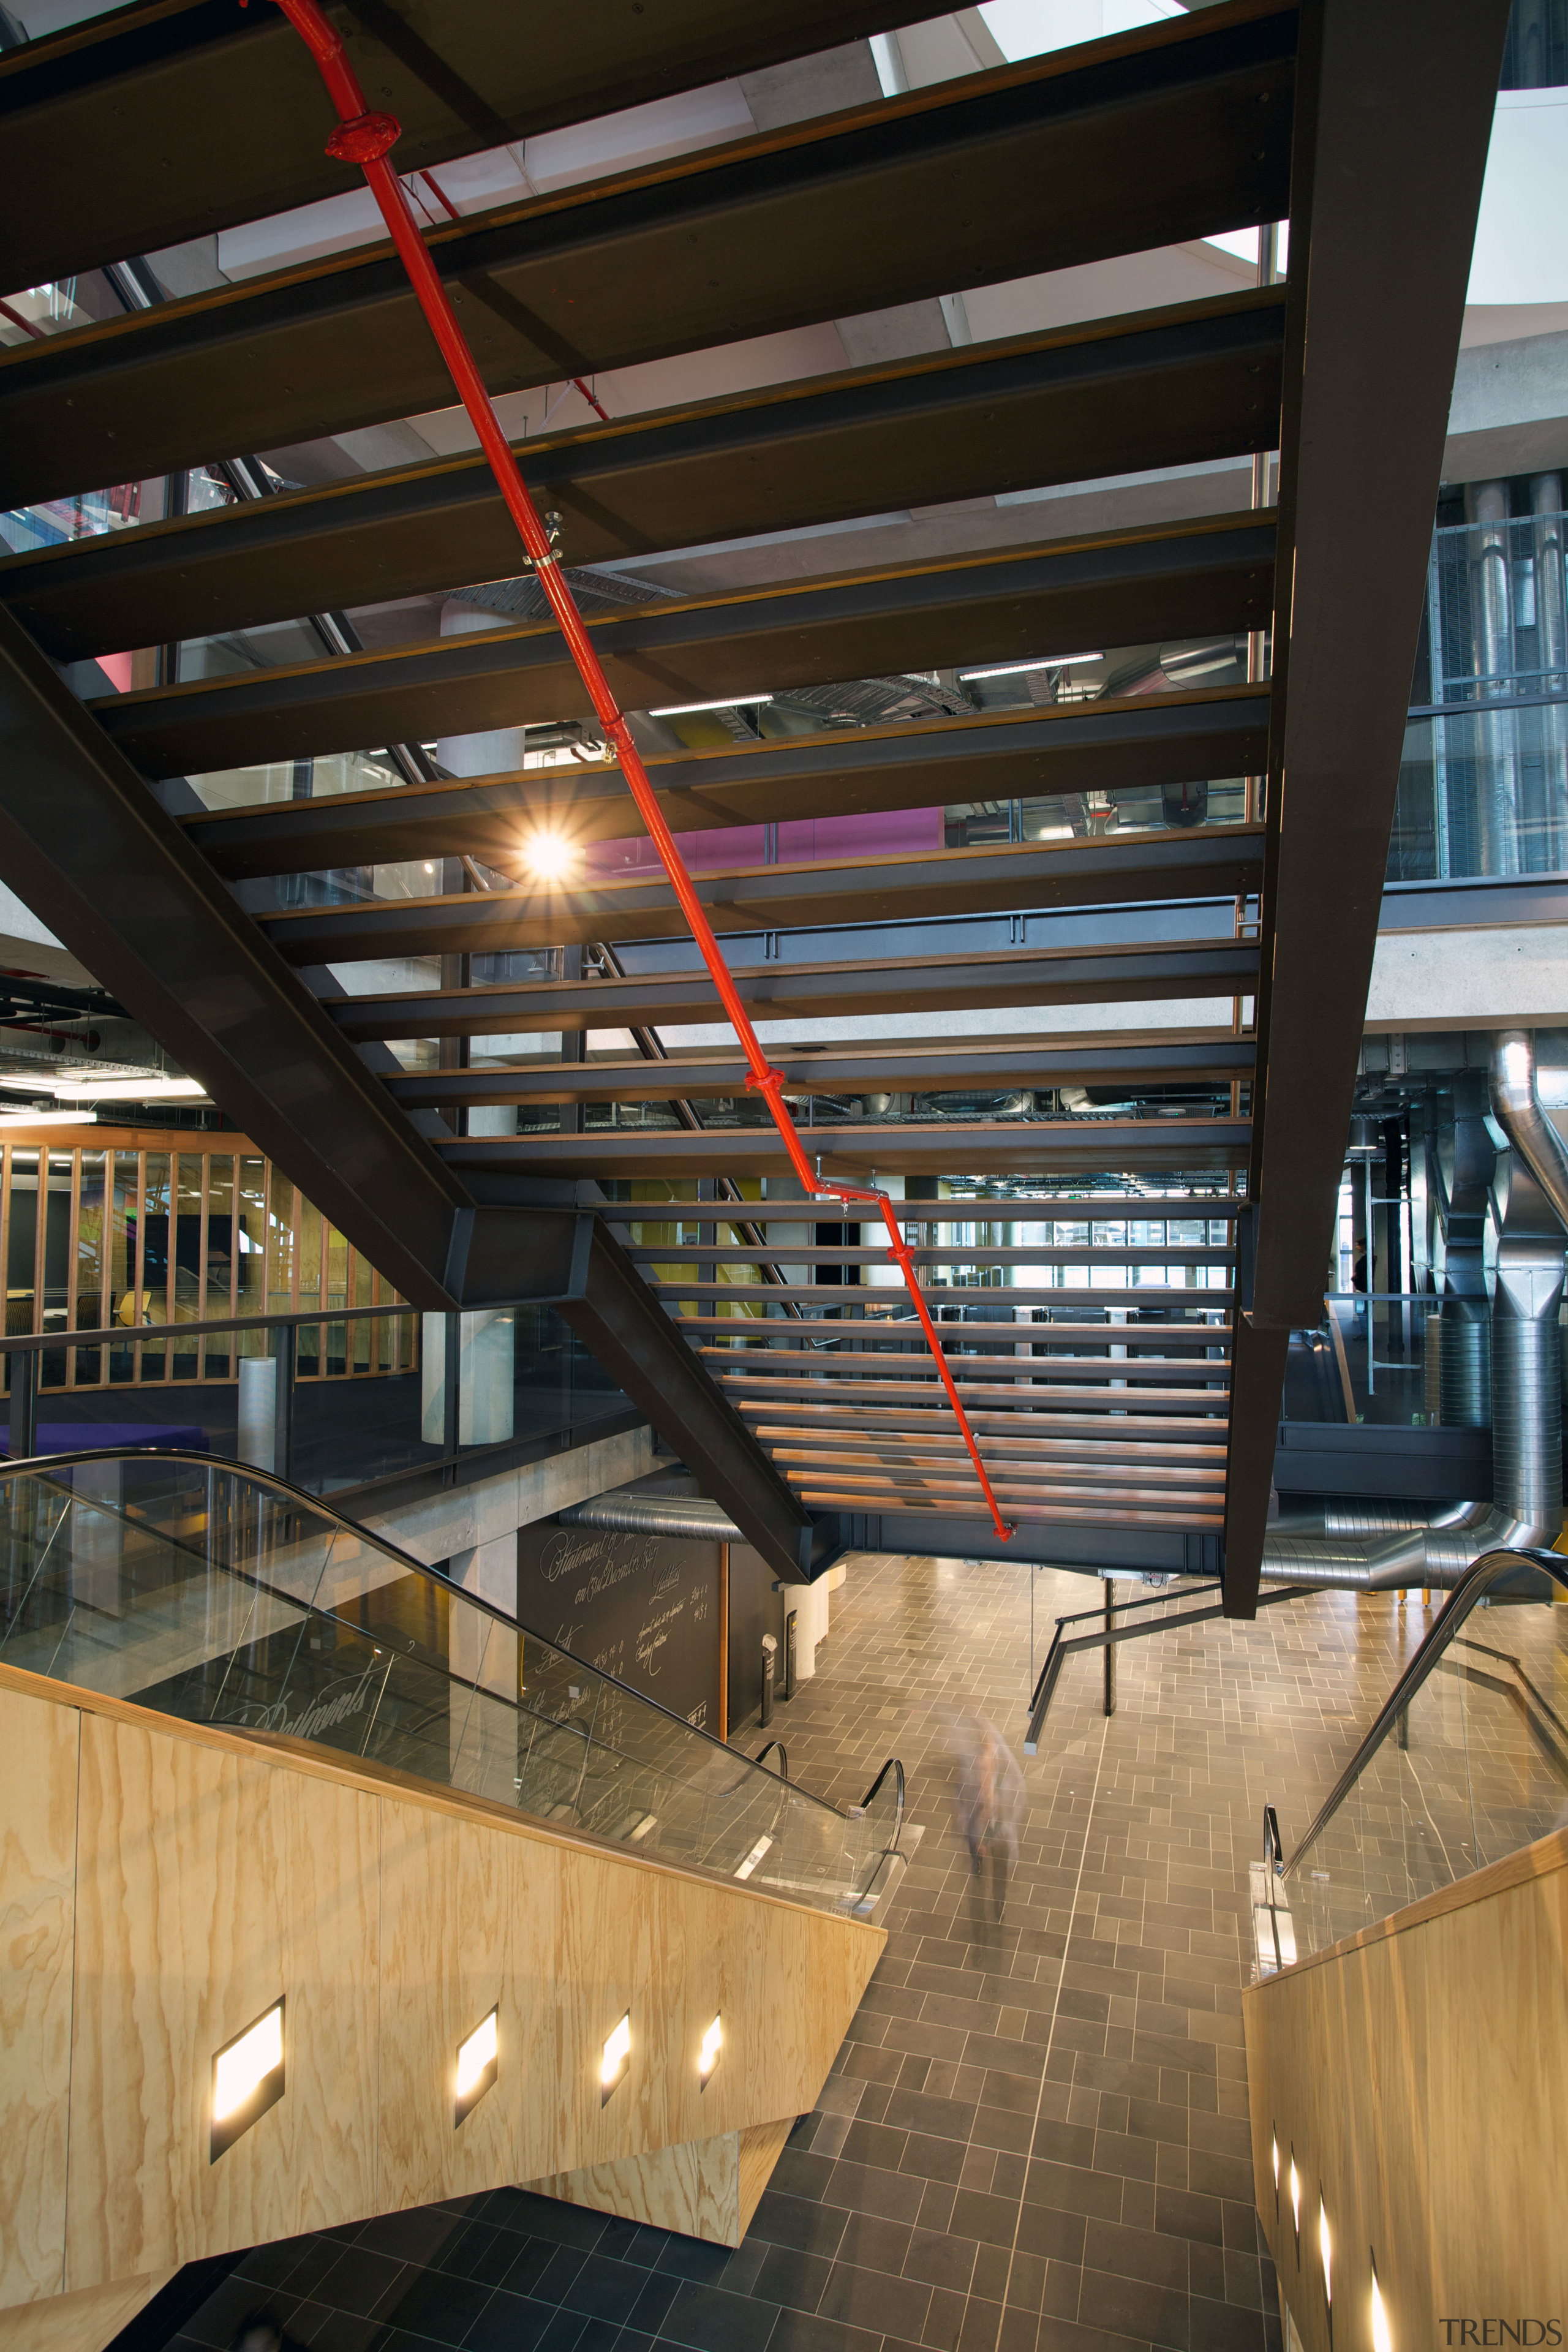 AFS Total Fire Protection supplied and installed the architecture, building, ceiling, daylighting, interior design, lobby, structure, black